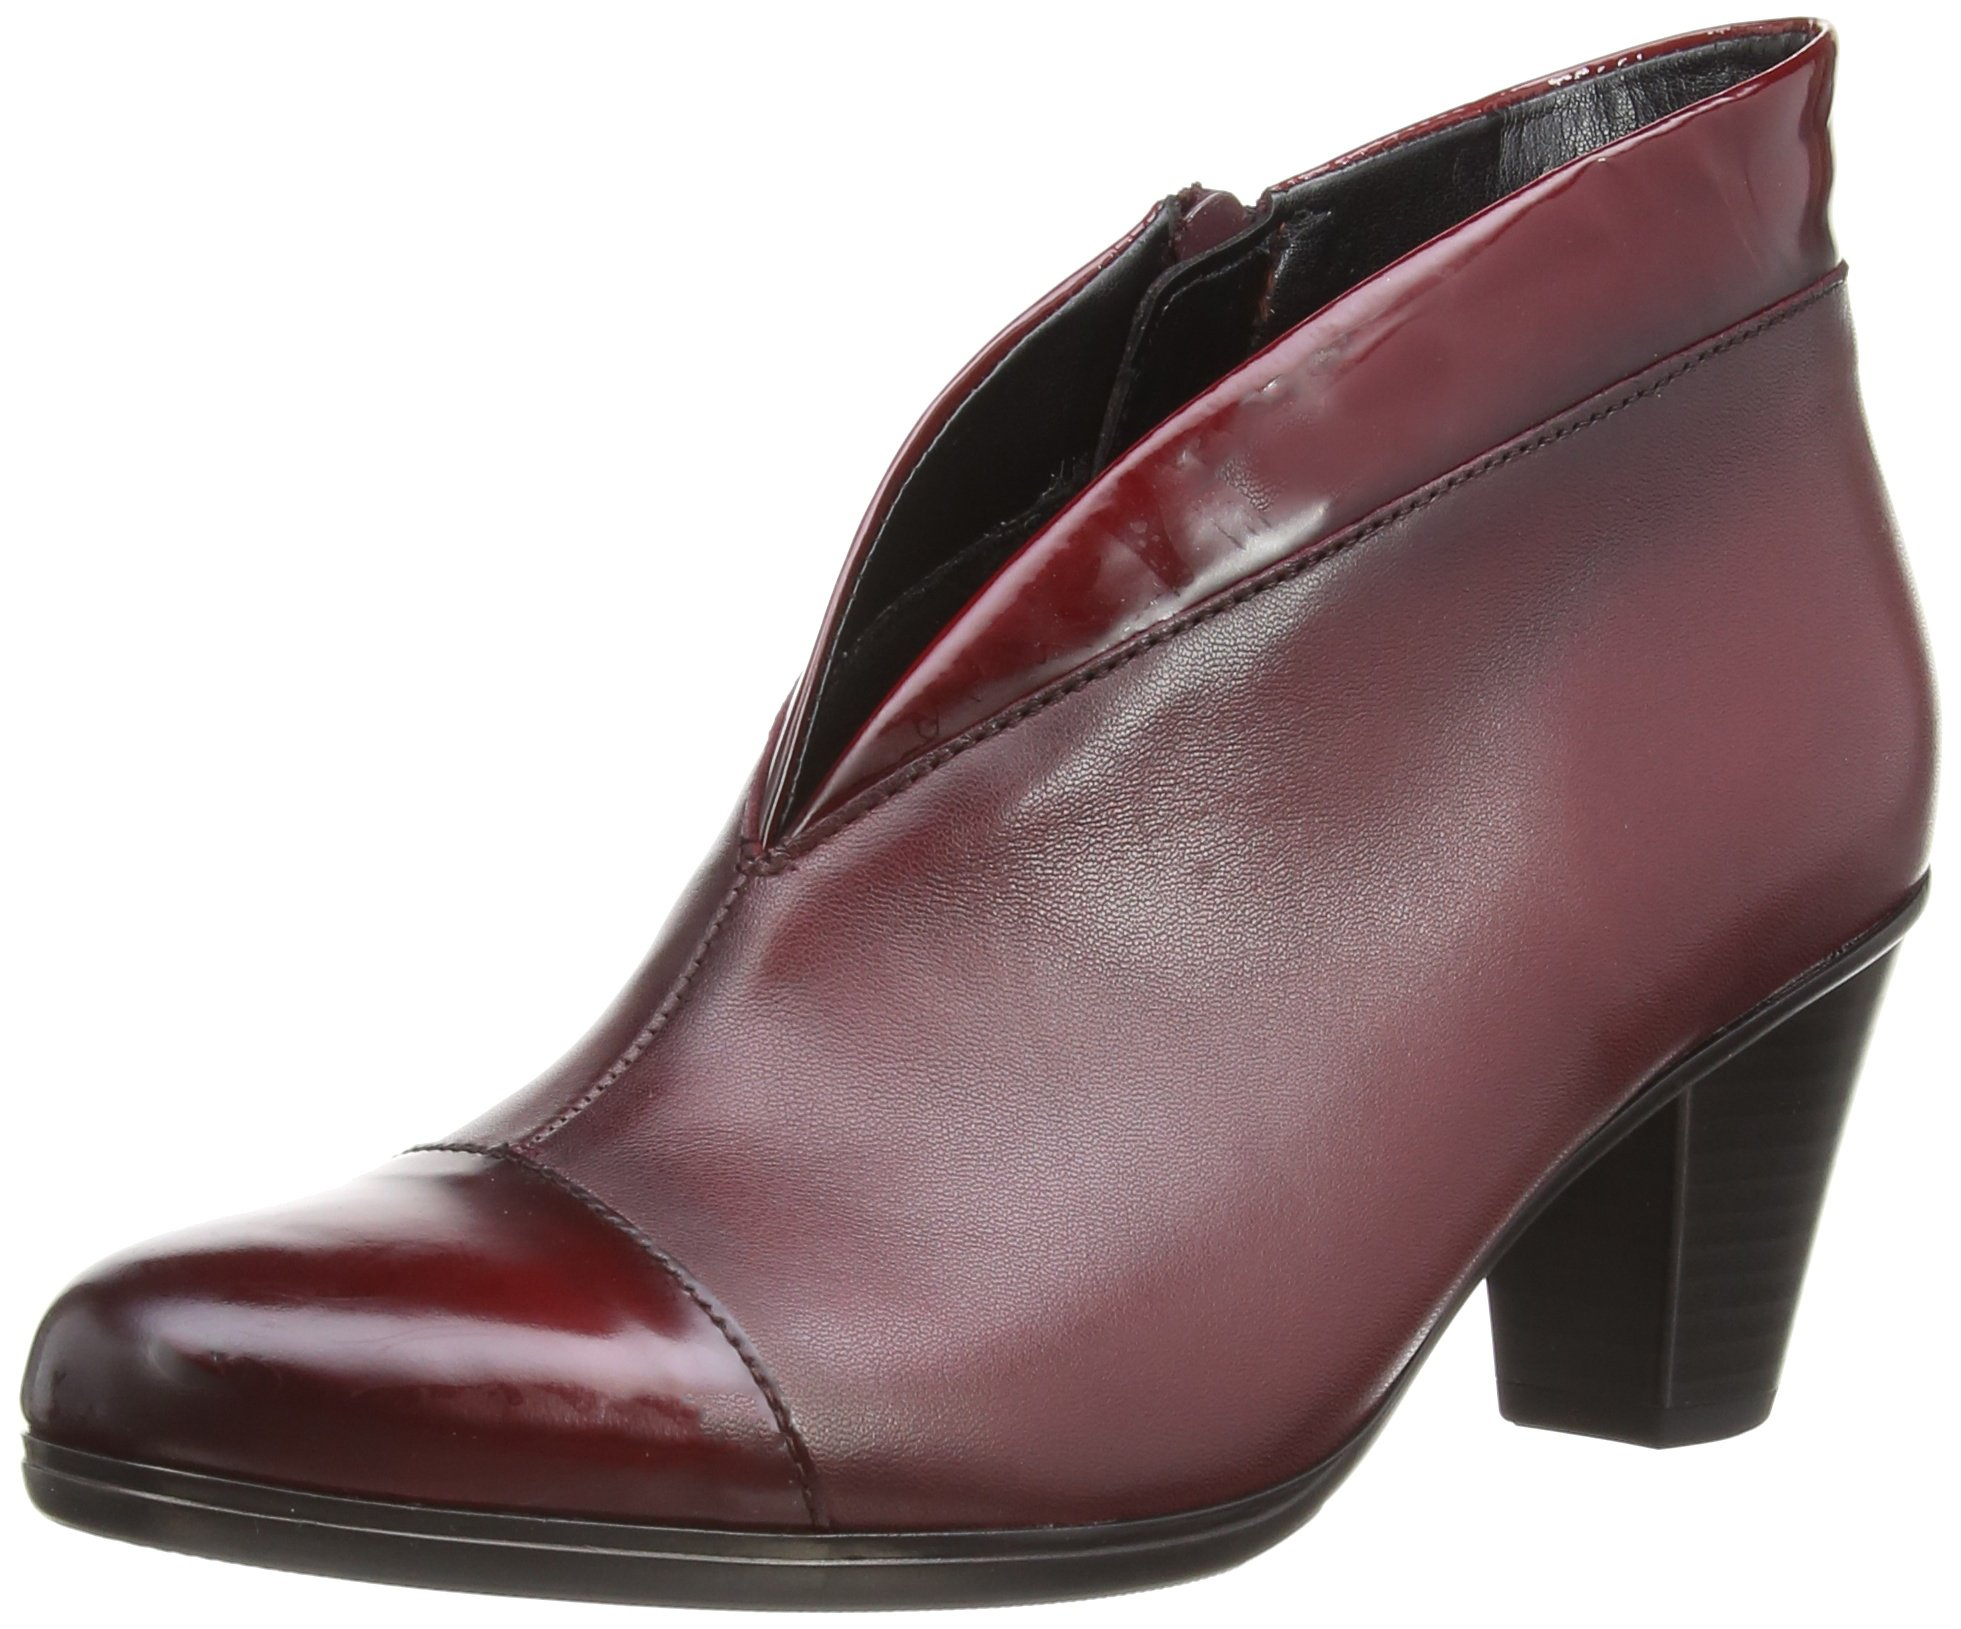 5 Leather patent Classiques Uk Eu5 Gabor FemmeRougedark 5 Red Trim38 EnfieldBottes n0O8PXkw